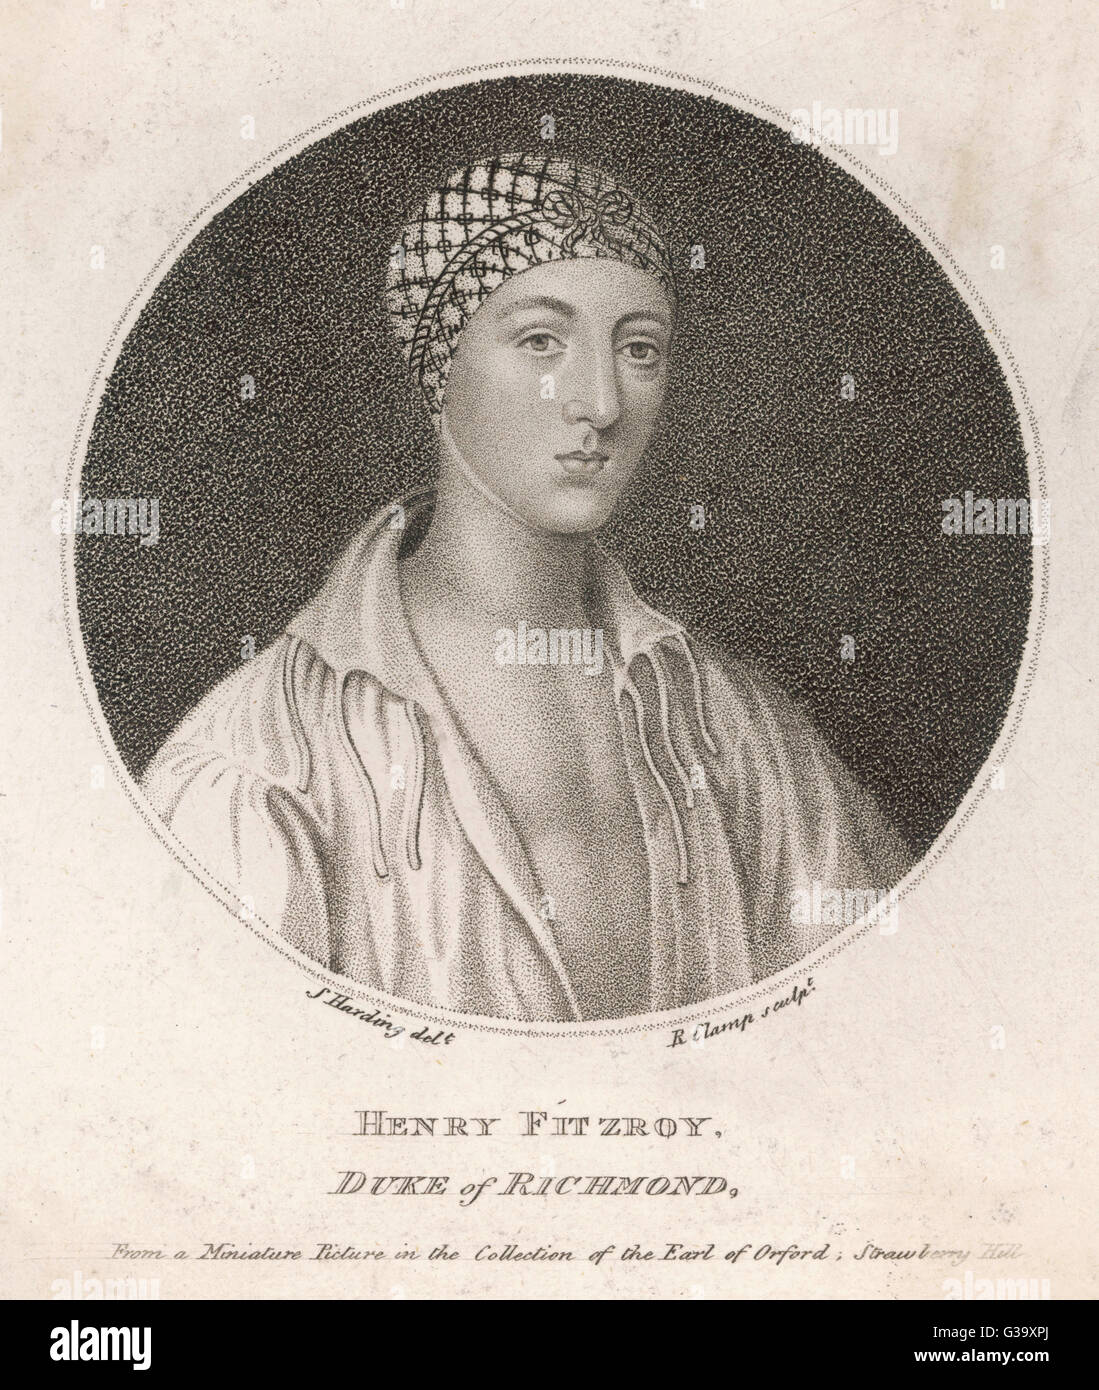 HENRY FITZROY DUKE OF RICHMOND  Illegitimate son of  HENRY VIII - his mother was ELIZABETH BLOUNT     Date: 1519 - Stock Image